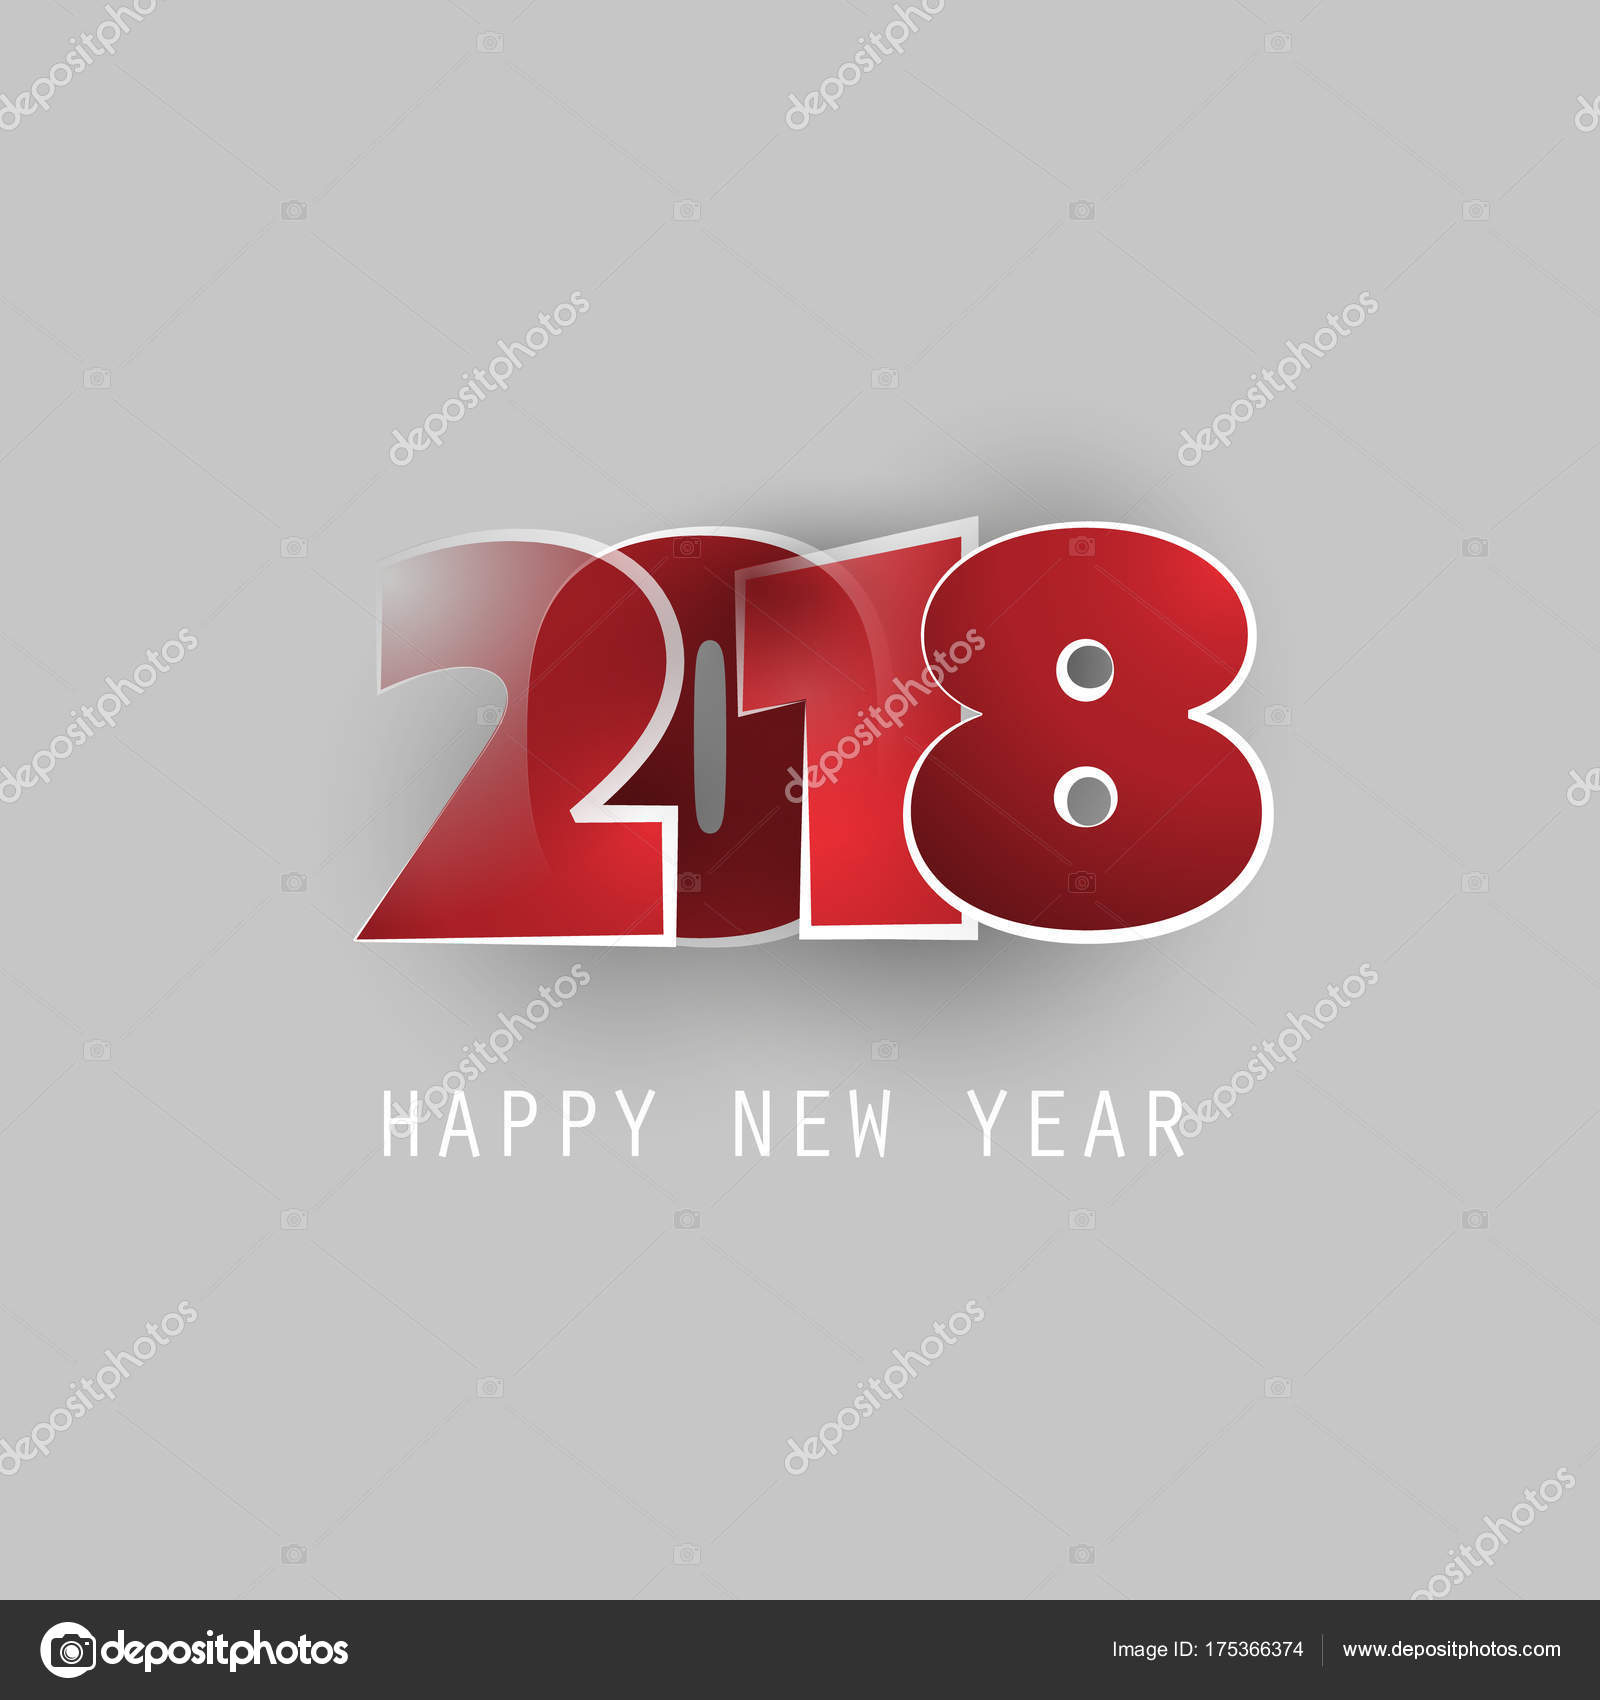 Best wishes abstract modern style happy new year greeting card or best wishes abstract colorful modern style new year card cover or background design template illustration in freely scalable and editable vector format m4hsunfo